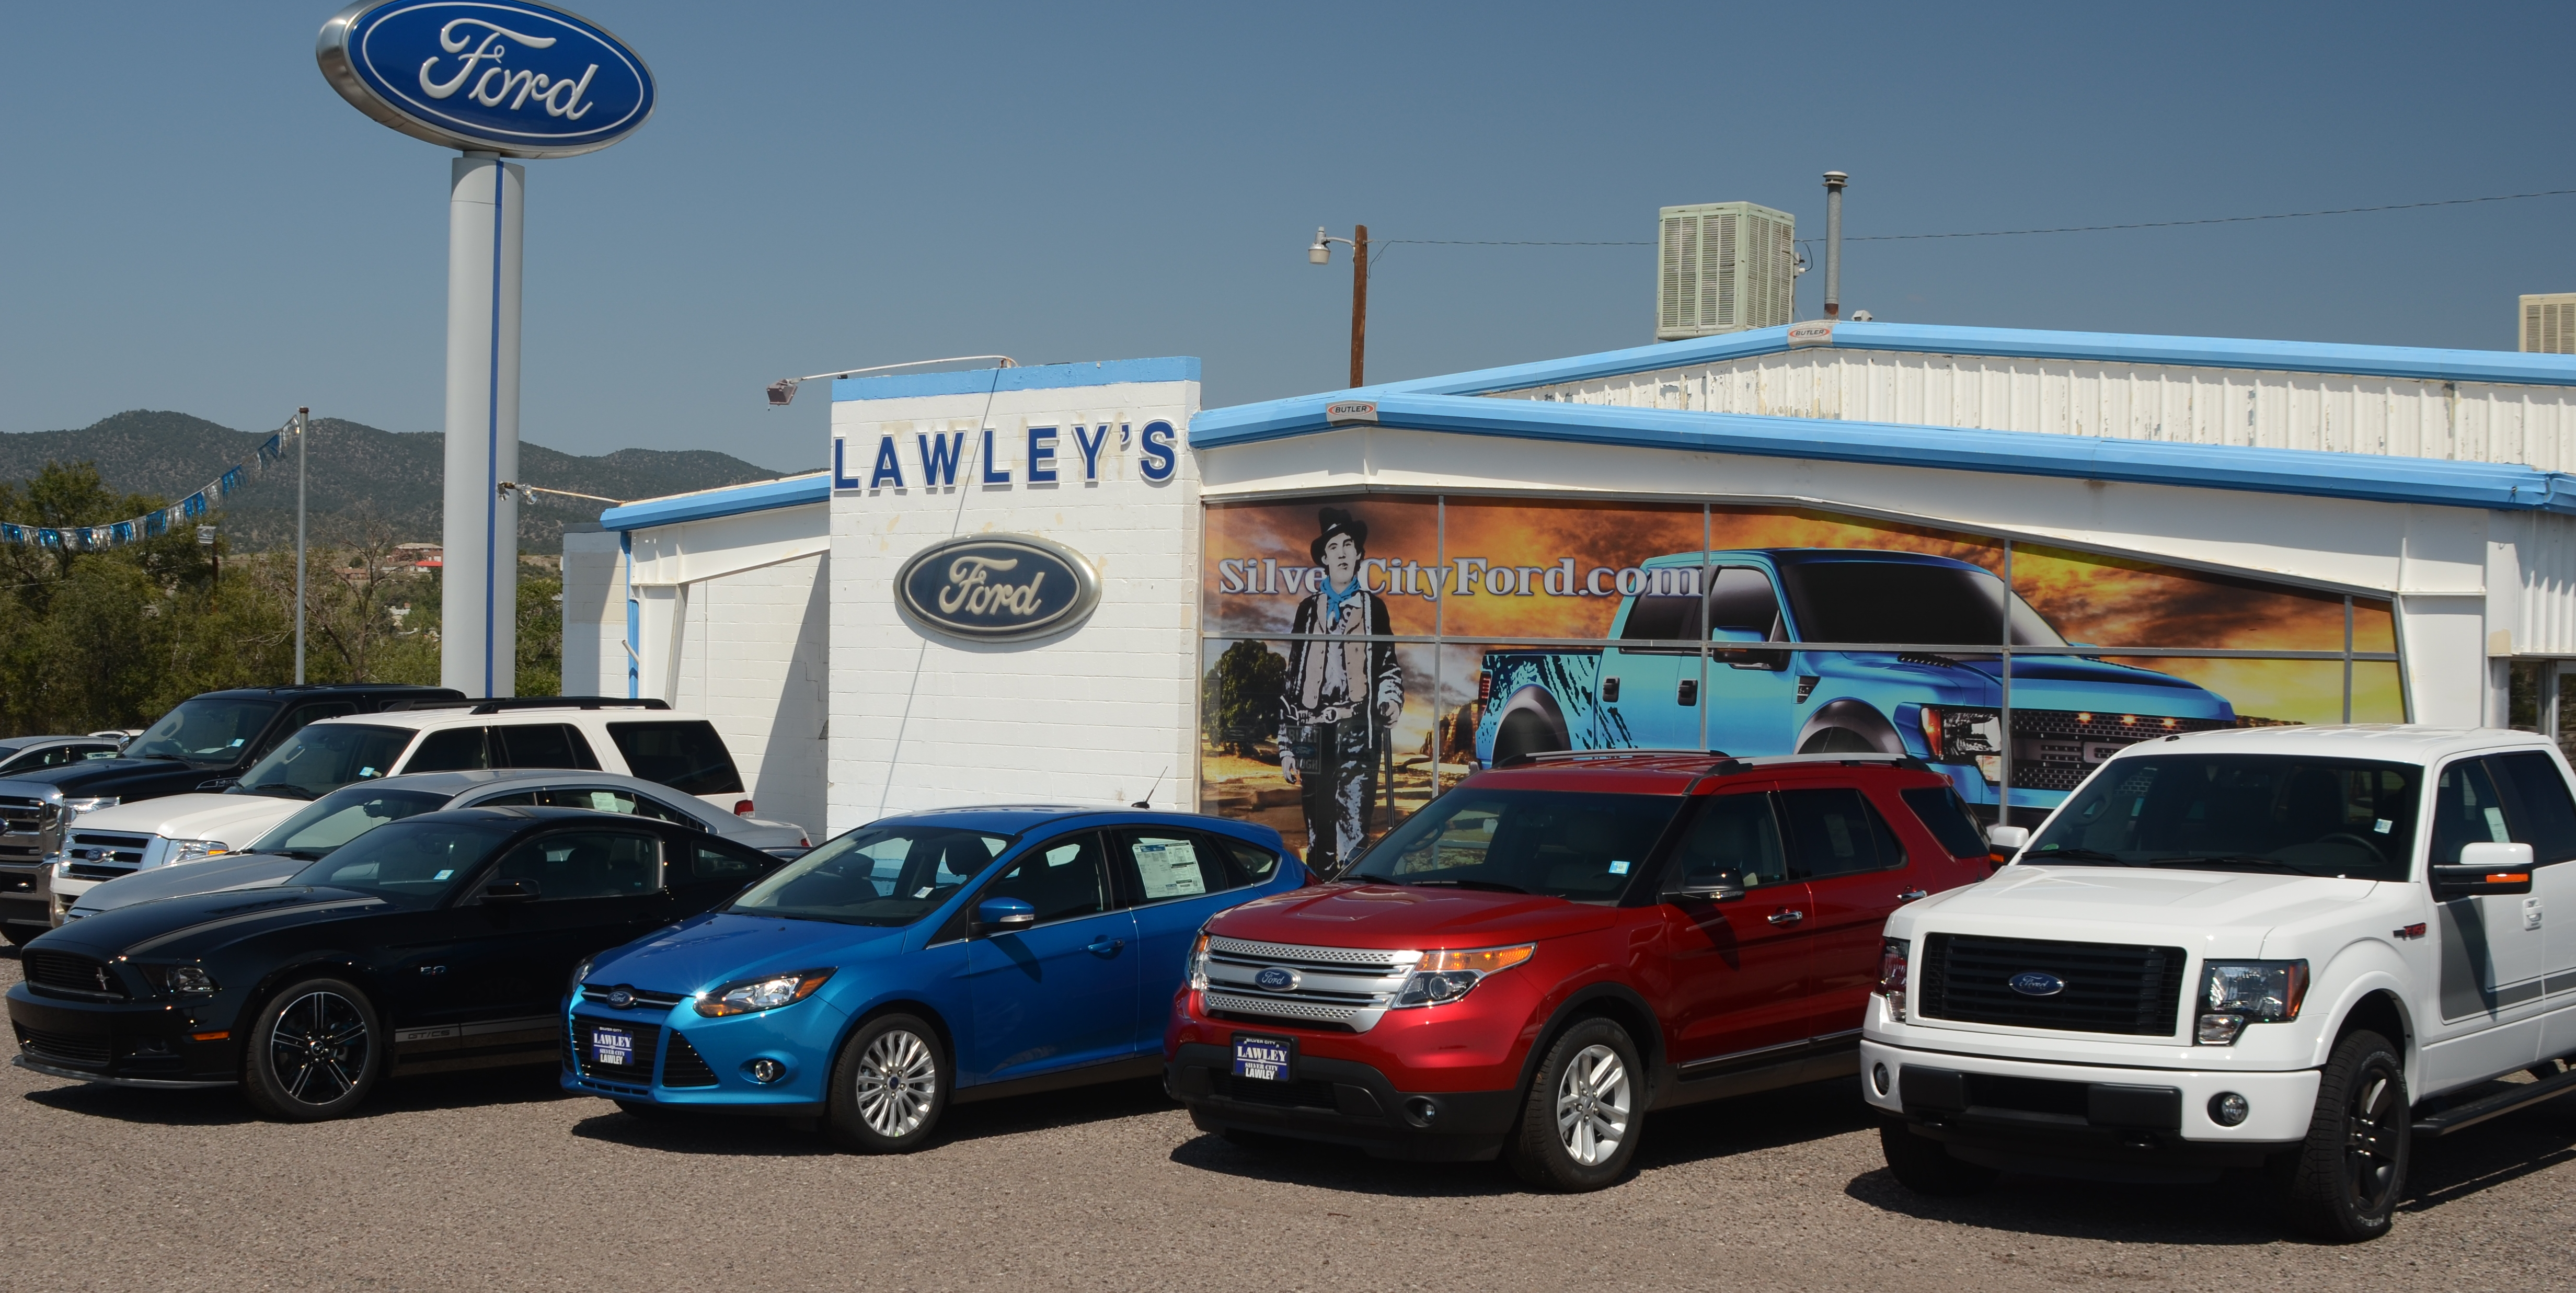 Lawley's Team Ford Silver City